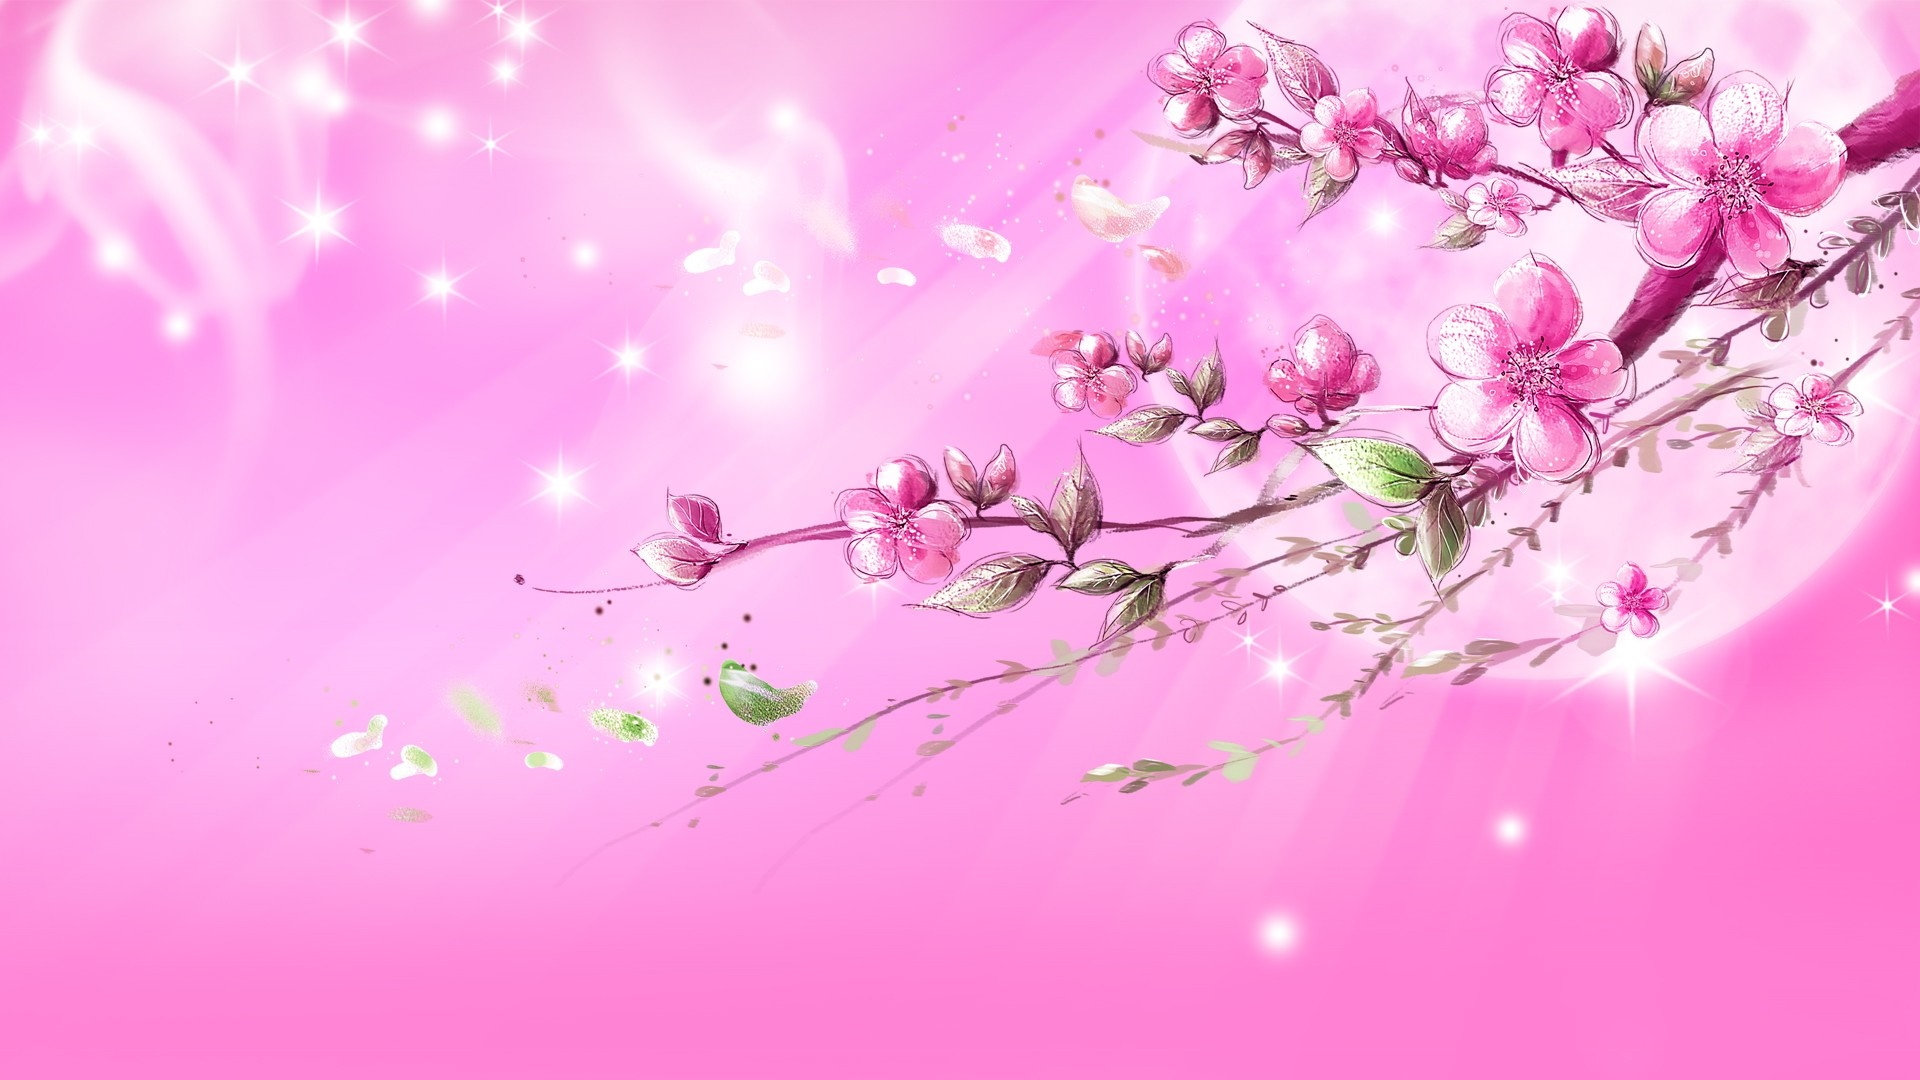 Flowers dream in pink wallpapers HD.